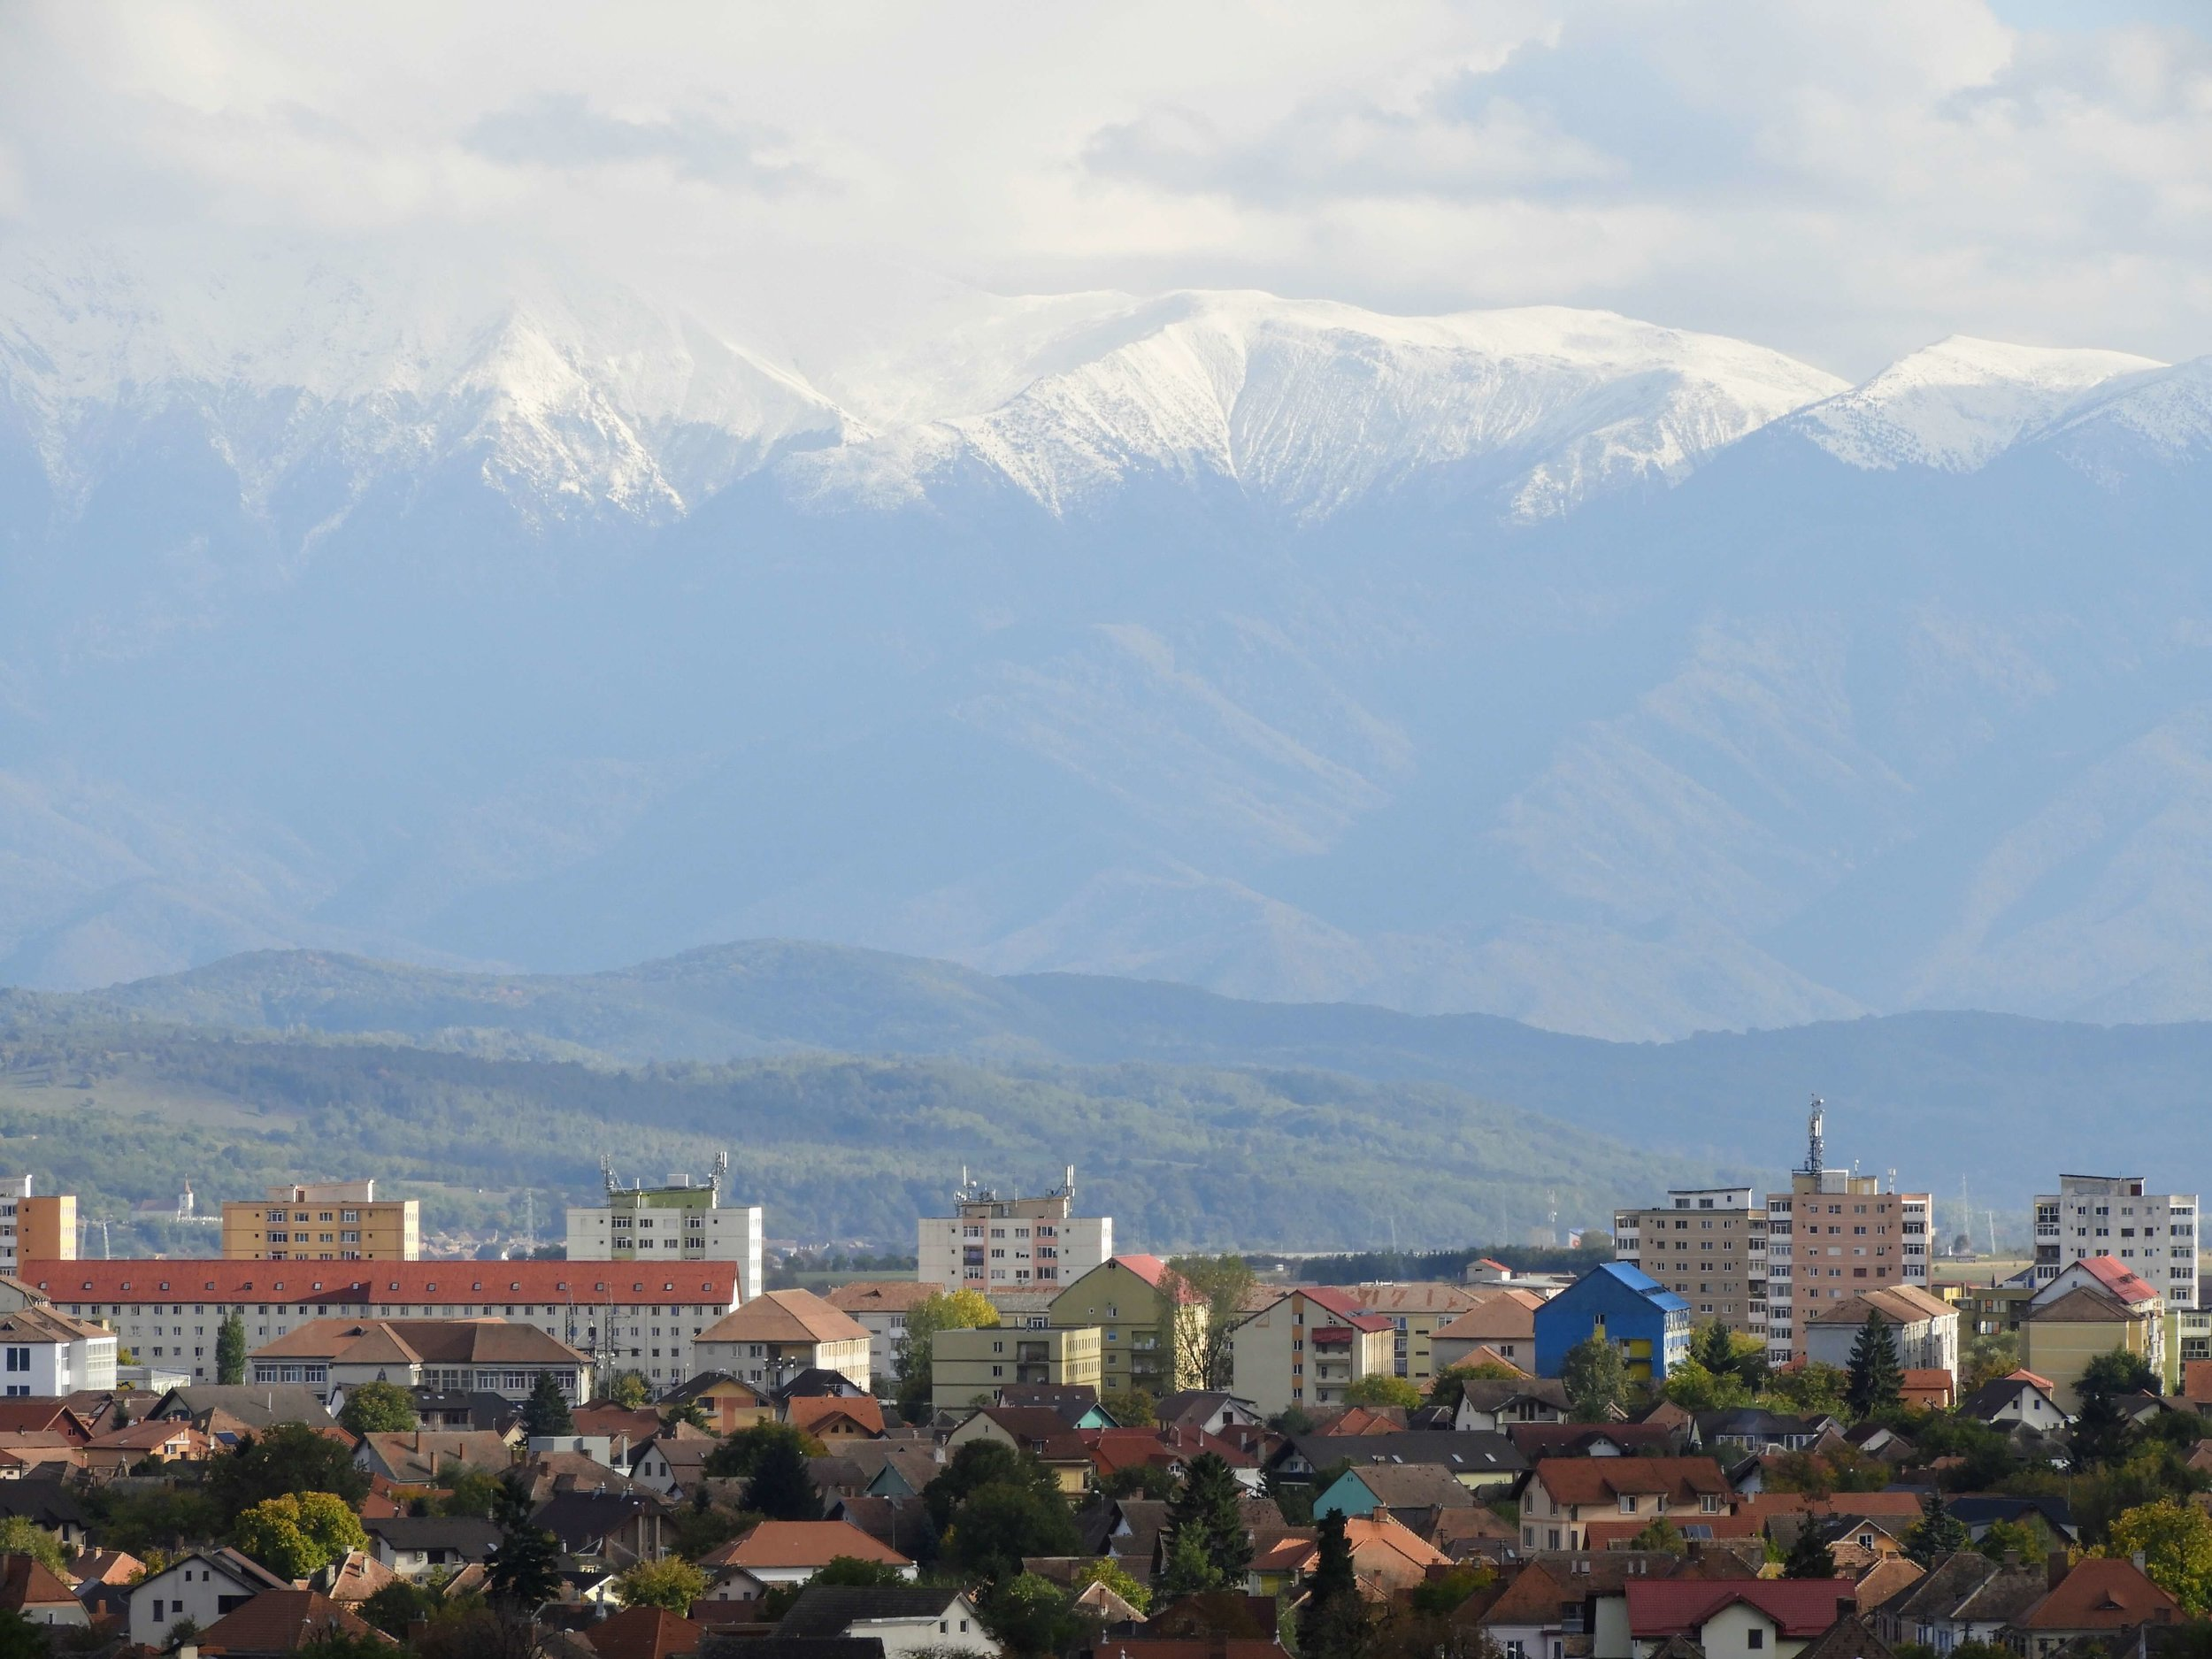 romania-sibiu-city-skyline-mountain-snow-october.JPG